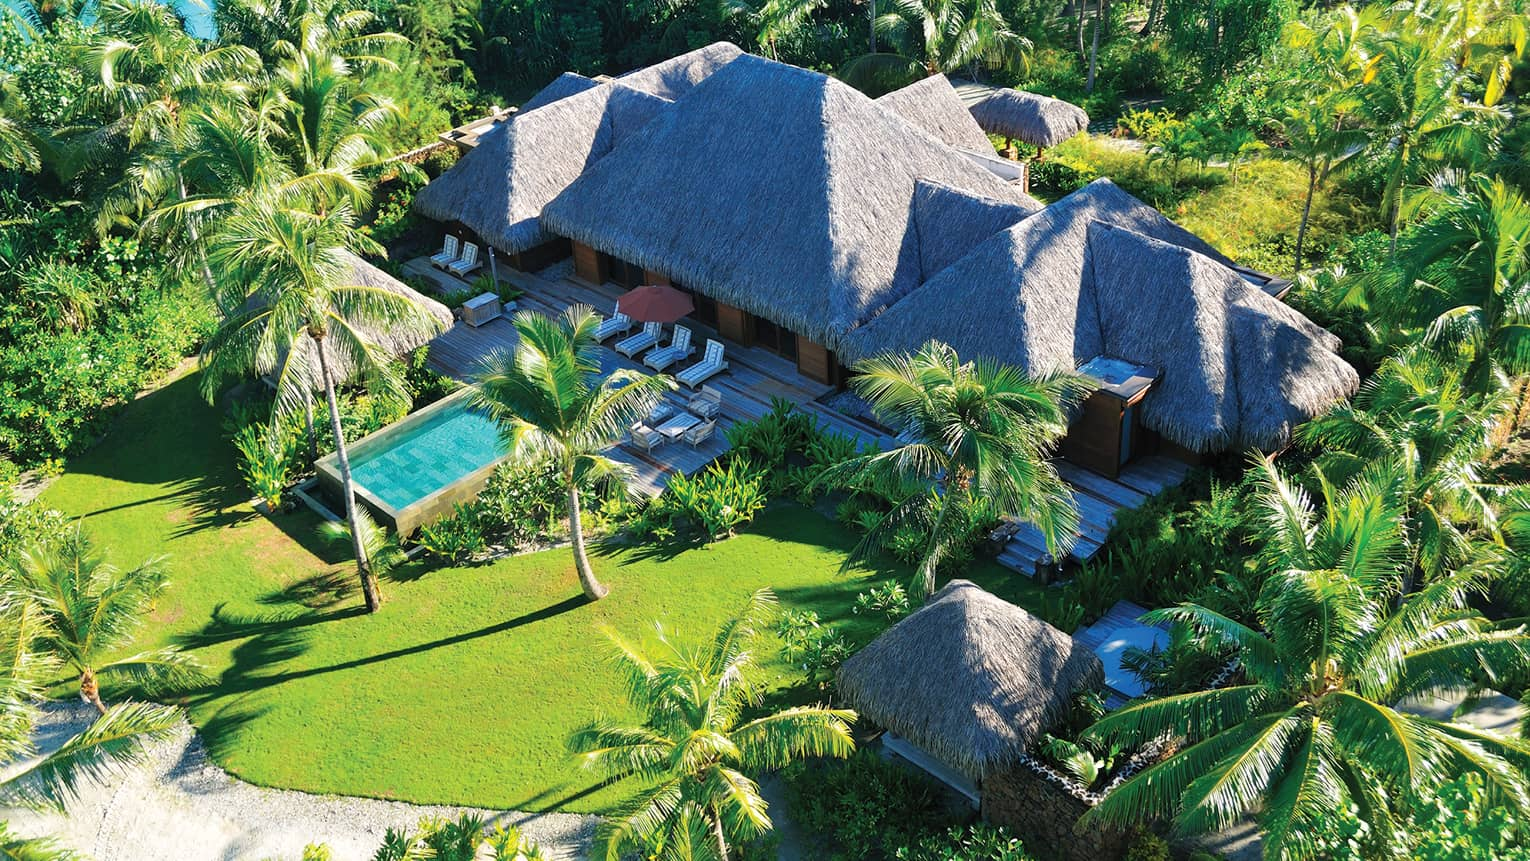 Aerial view of three-bedroom beach villa with thatched roof, private pool, green lawn, palms